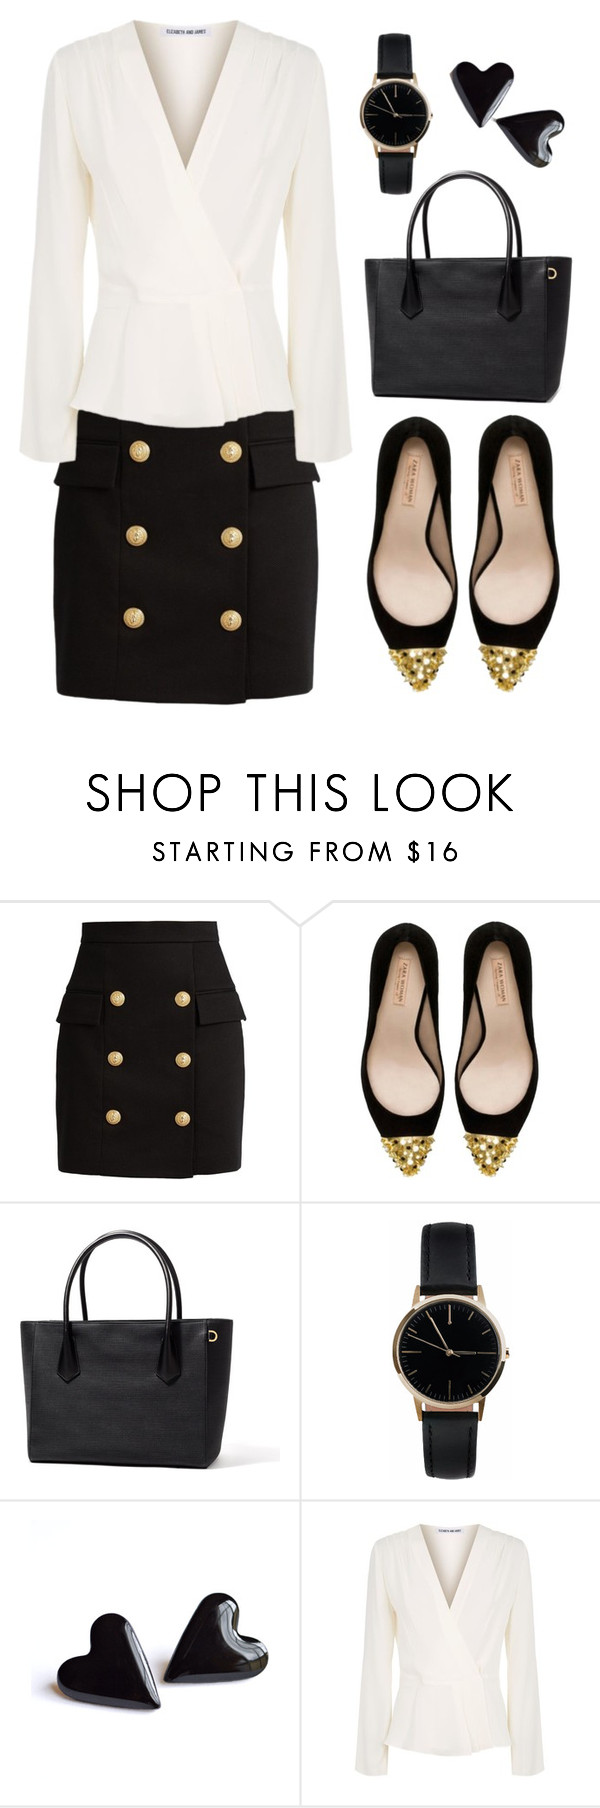 """New # 3.68"" by cami-li ❤ liked on Polyvore featuring Balmain, Zara, Freedom To Exist and Elizabeth and James"